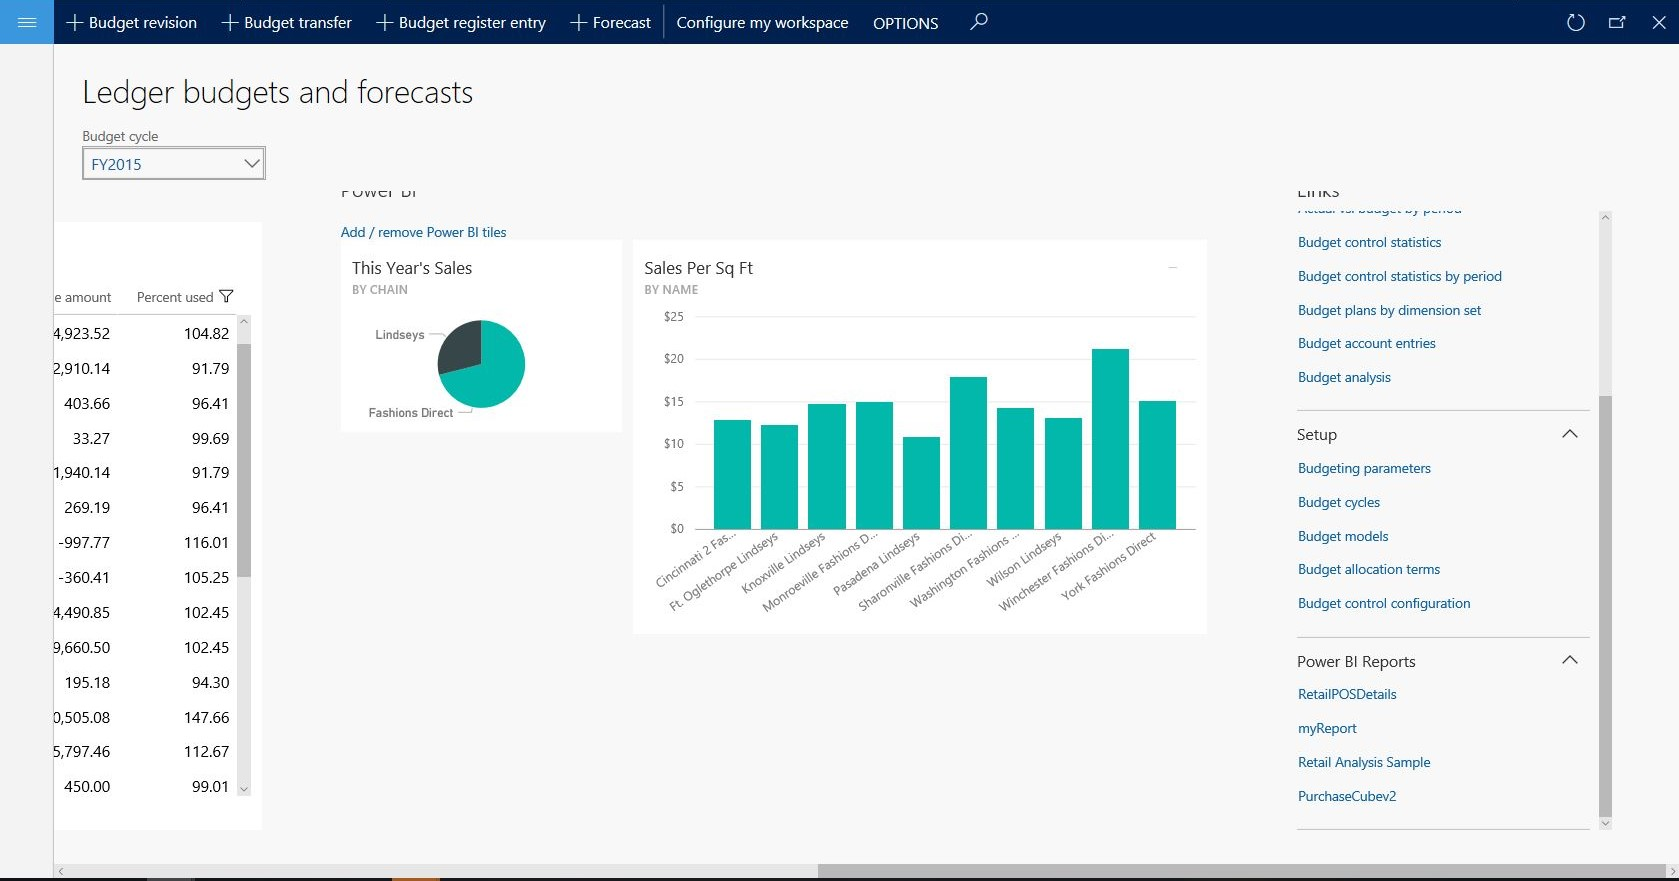 Power bi reports section in the links section